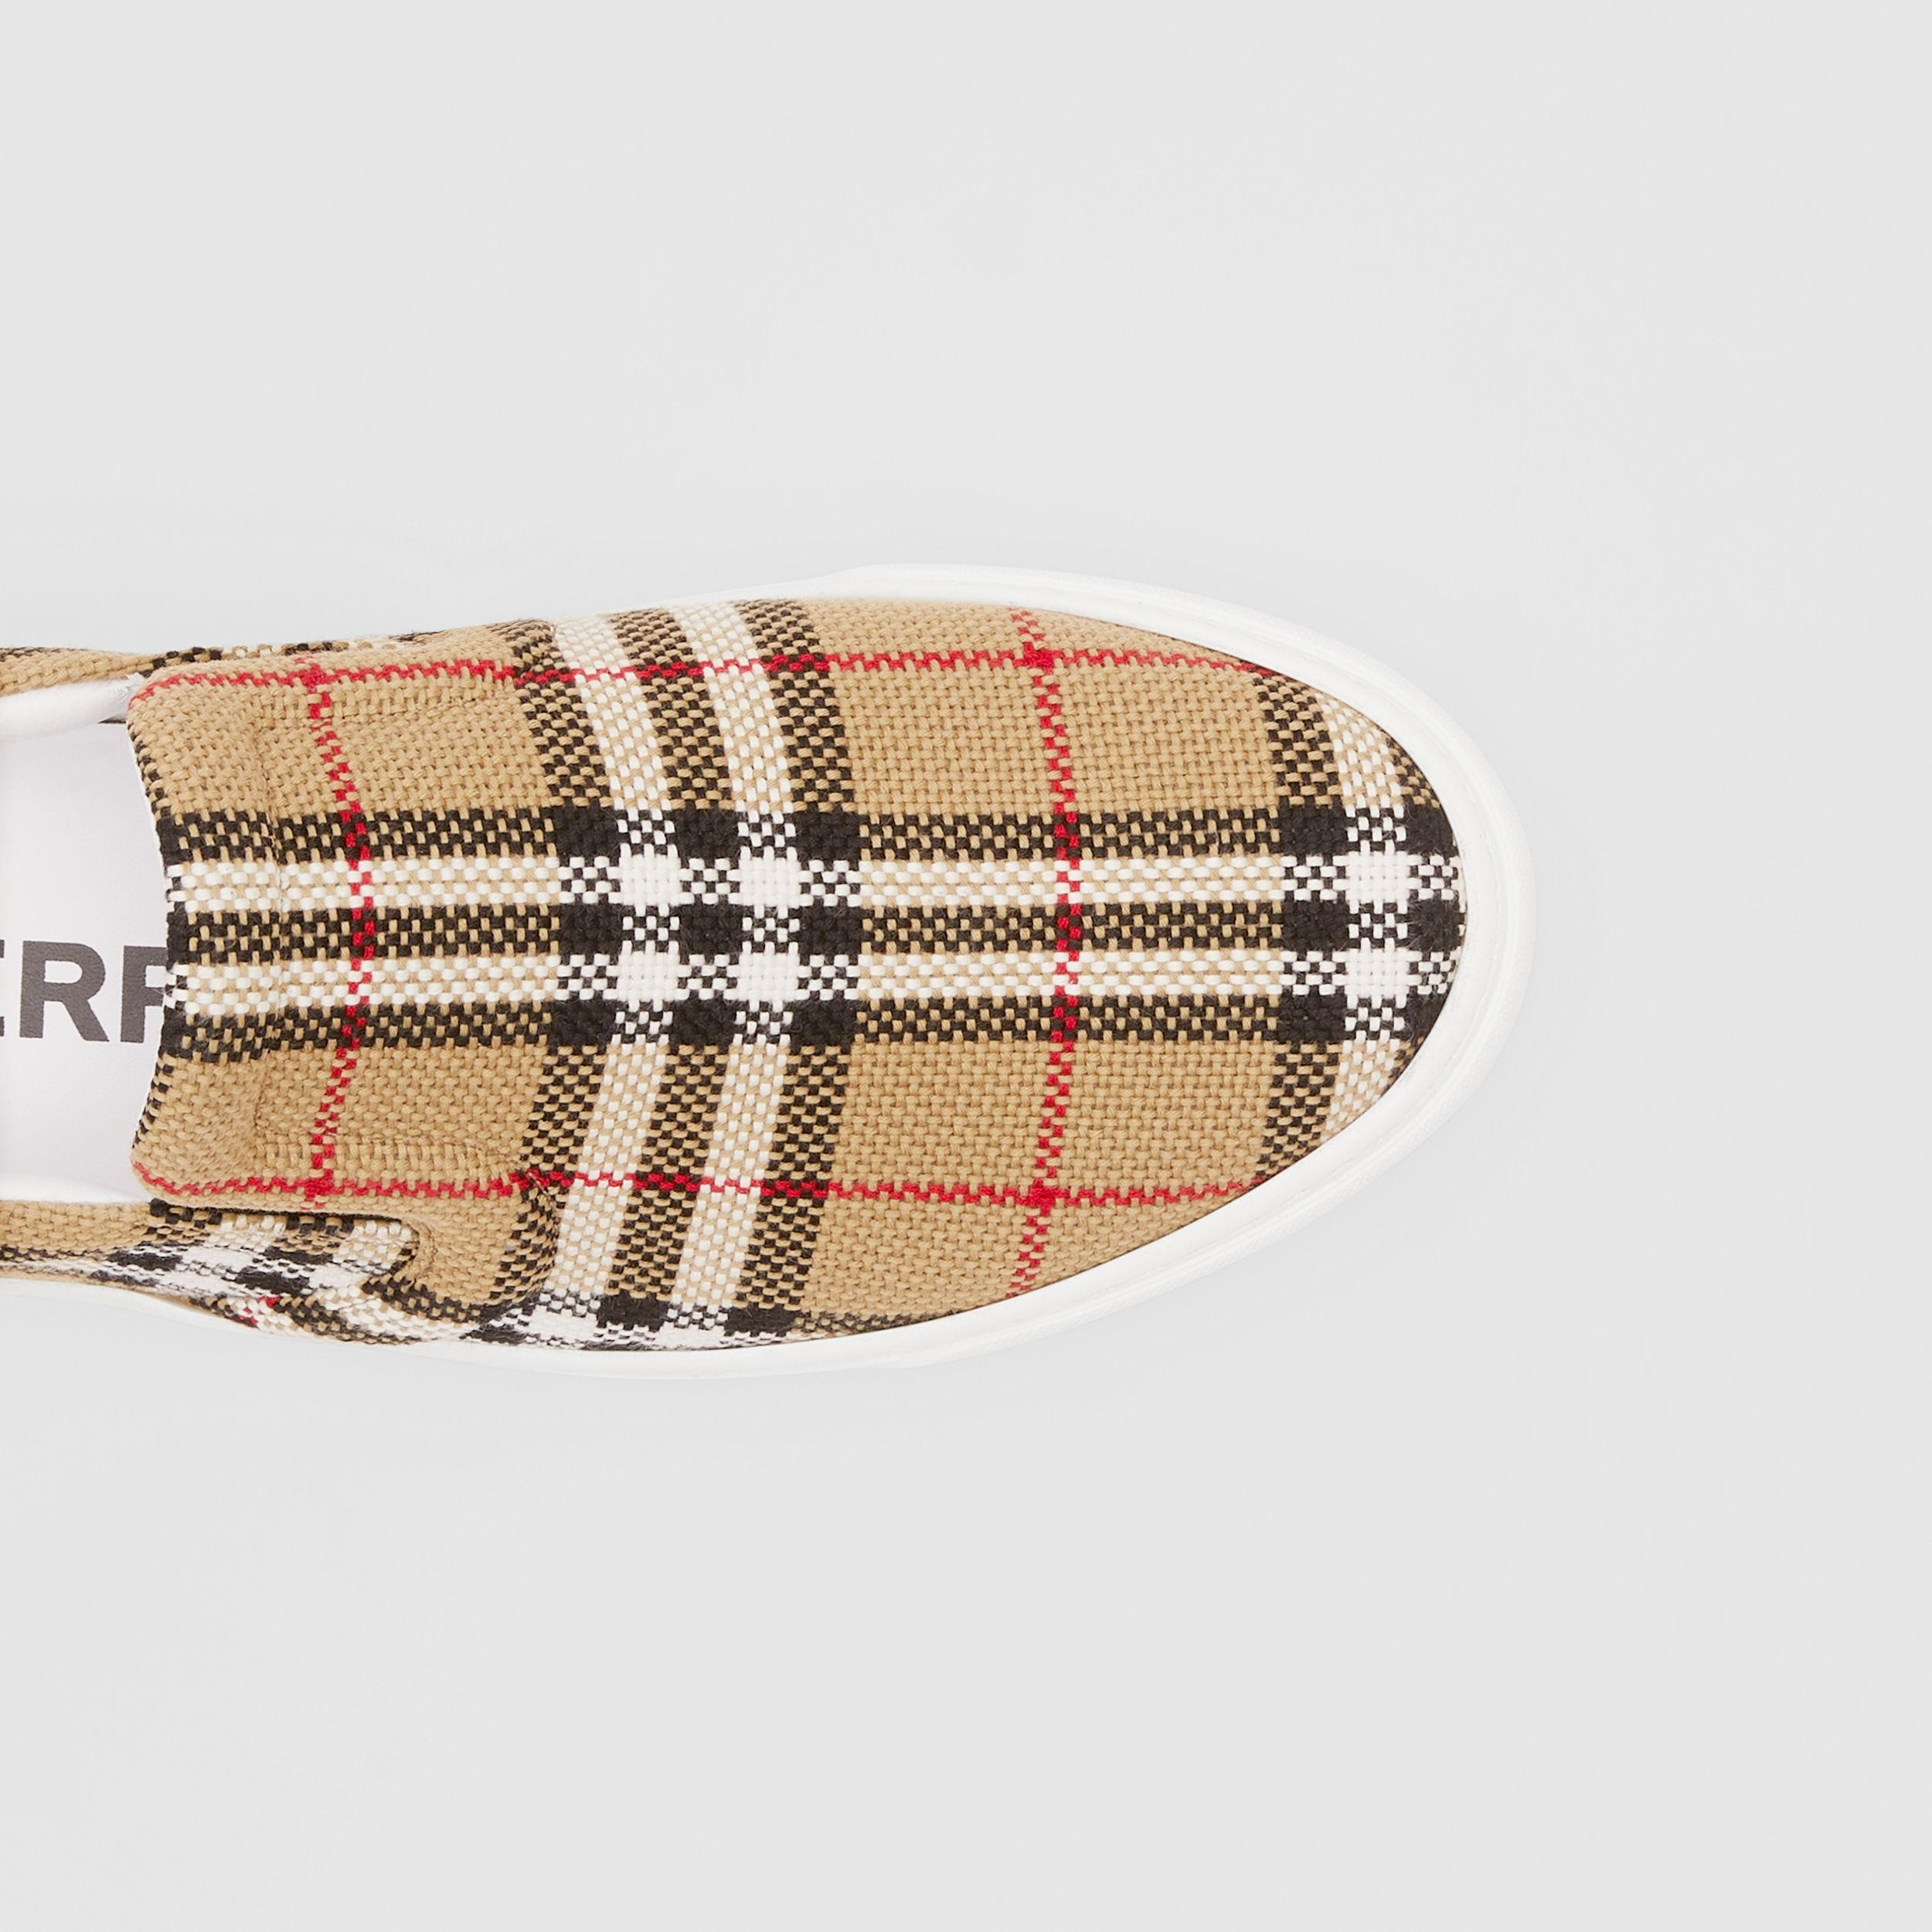 Bio-based Sole Latticed Cotton Slip-on Sneakers in Archive Beige - Men | Burberry Singapore - 2